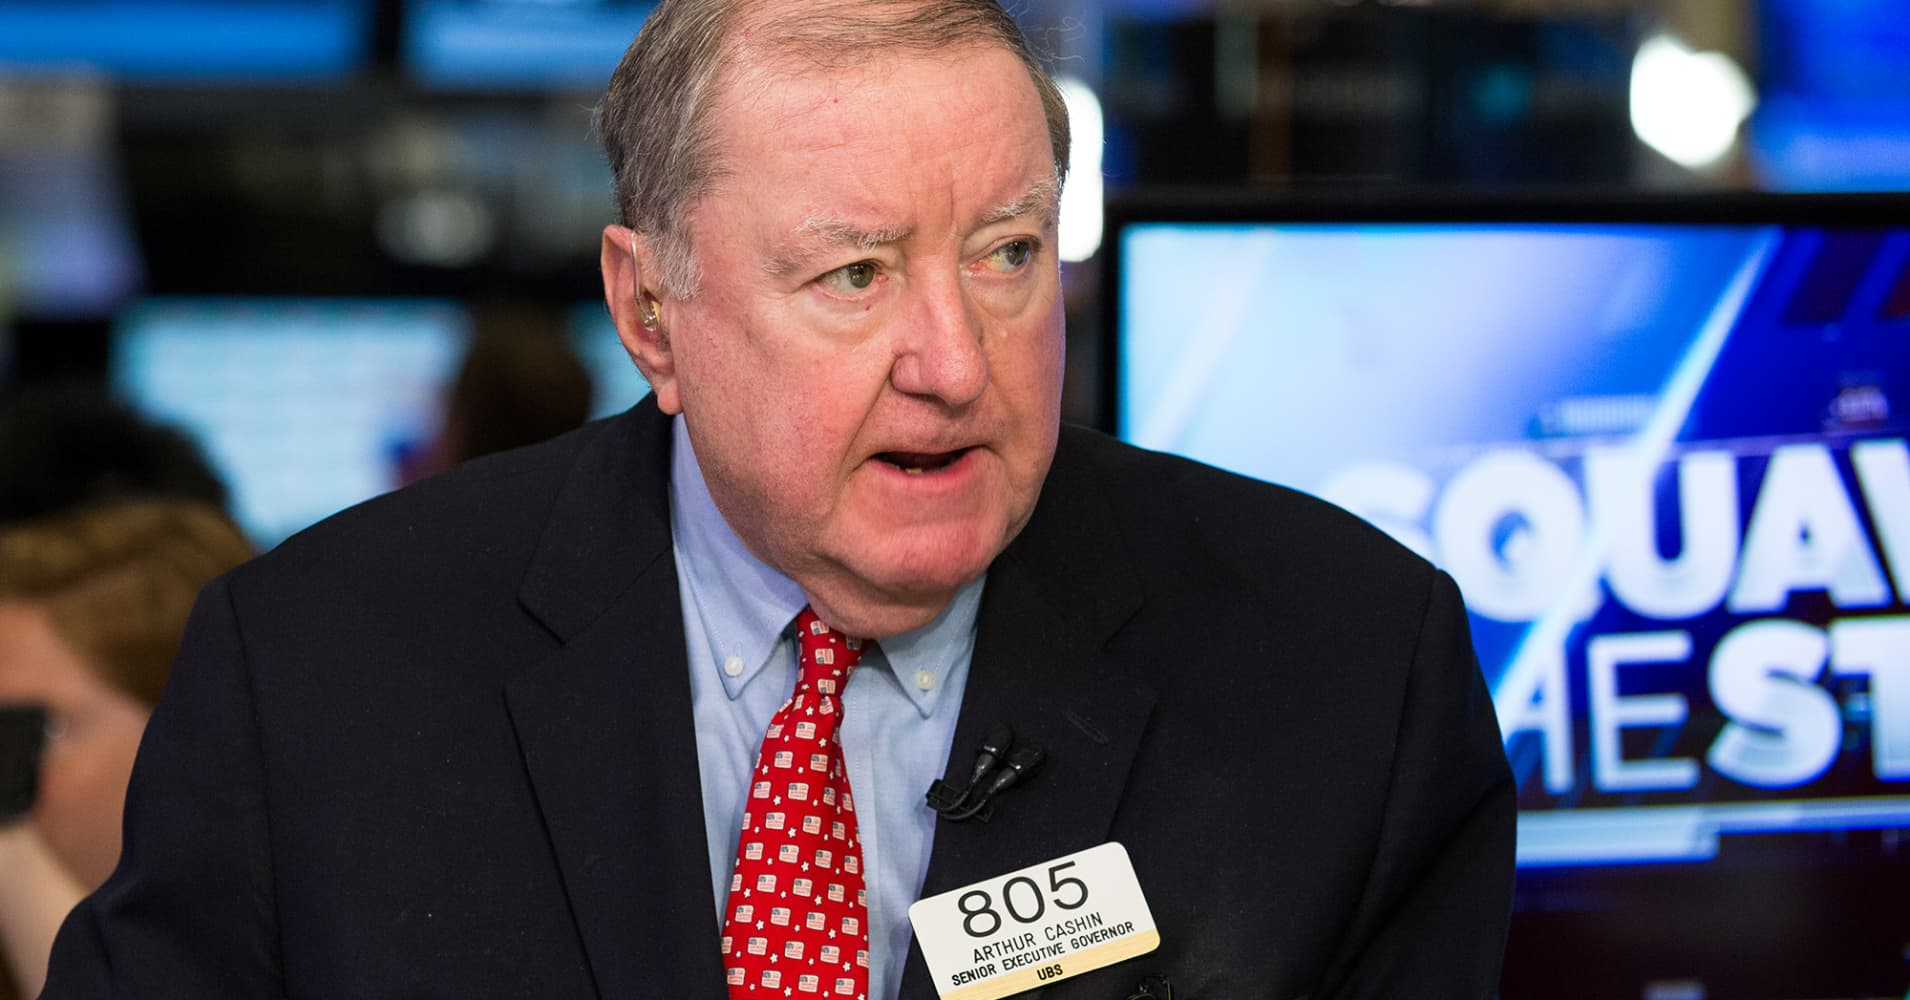 A new report has Art Cashin worried about a 2008 financial crisis repeat